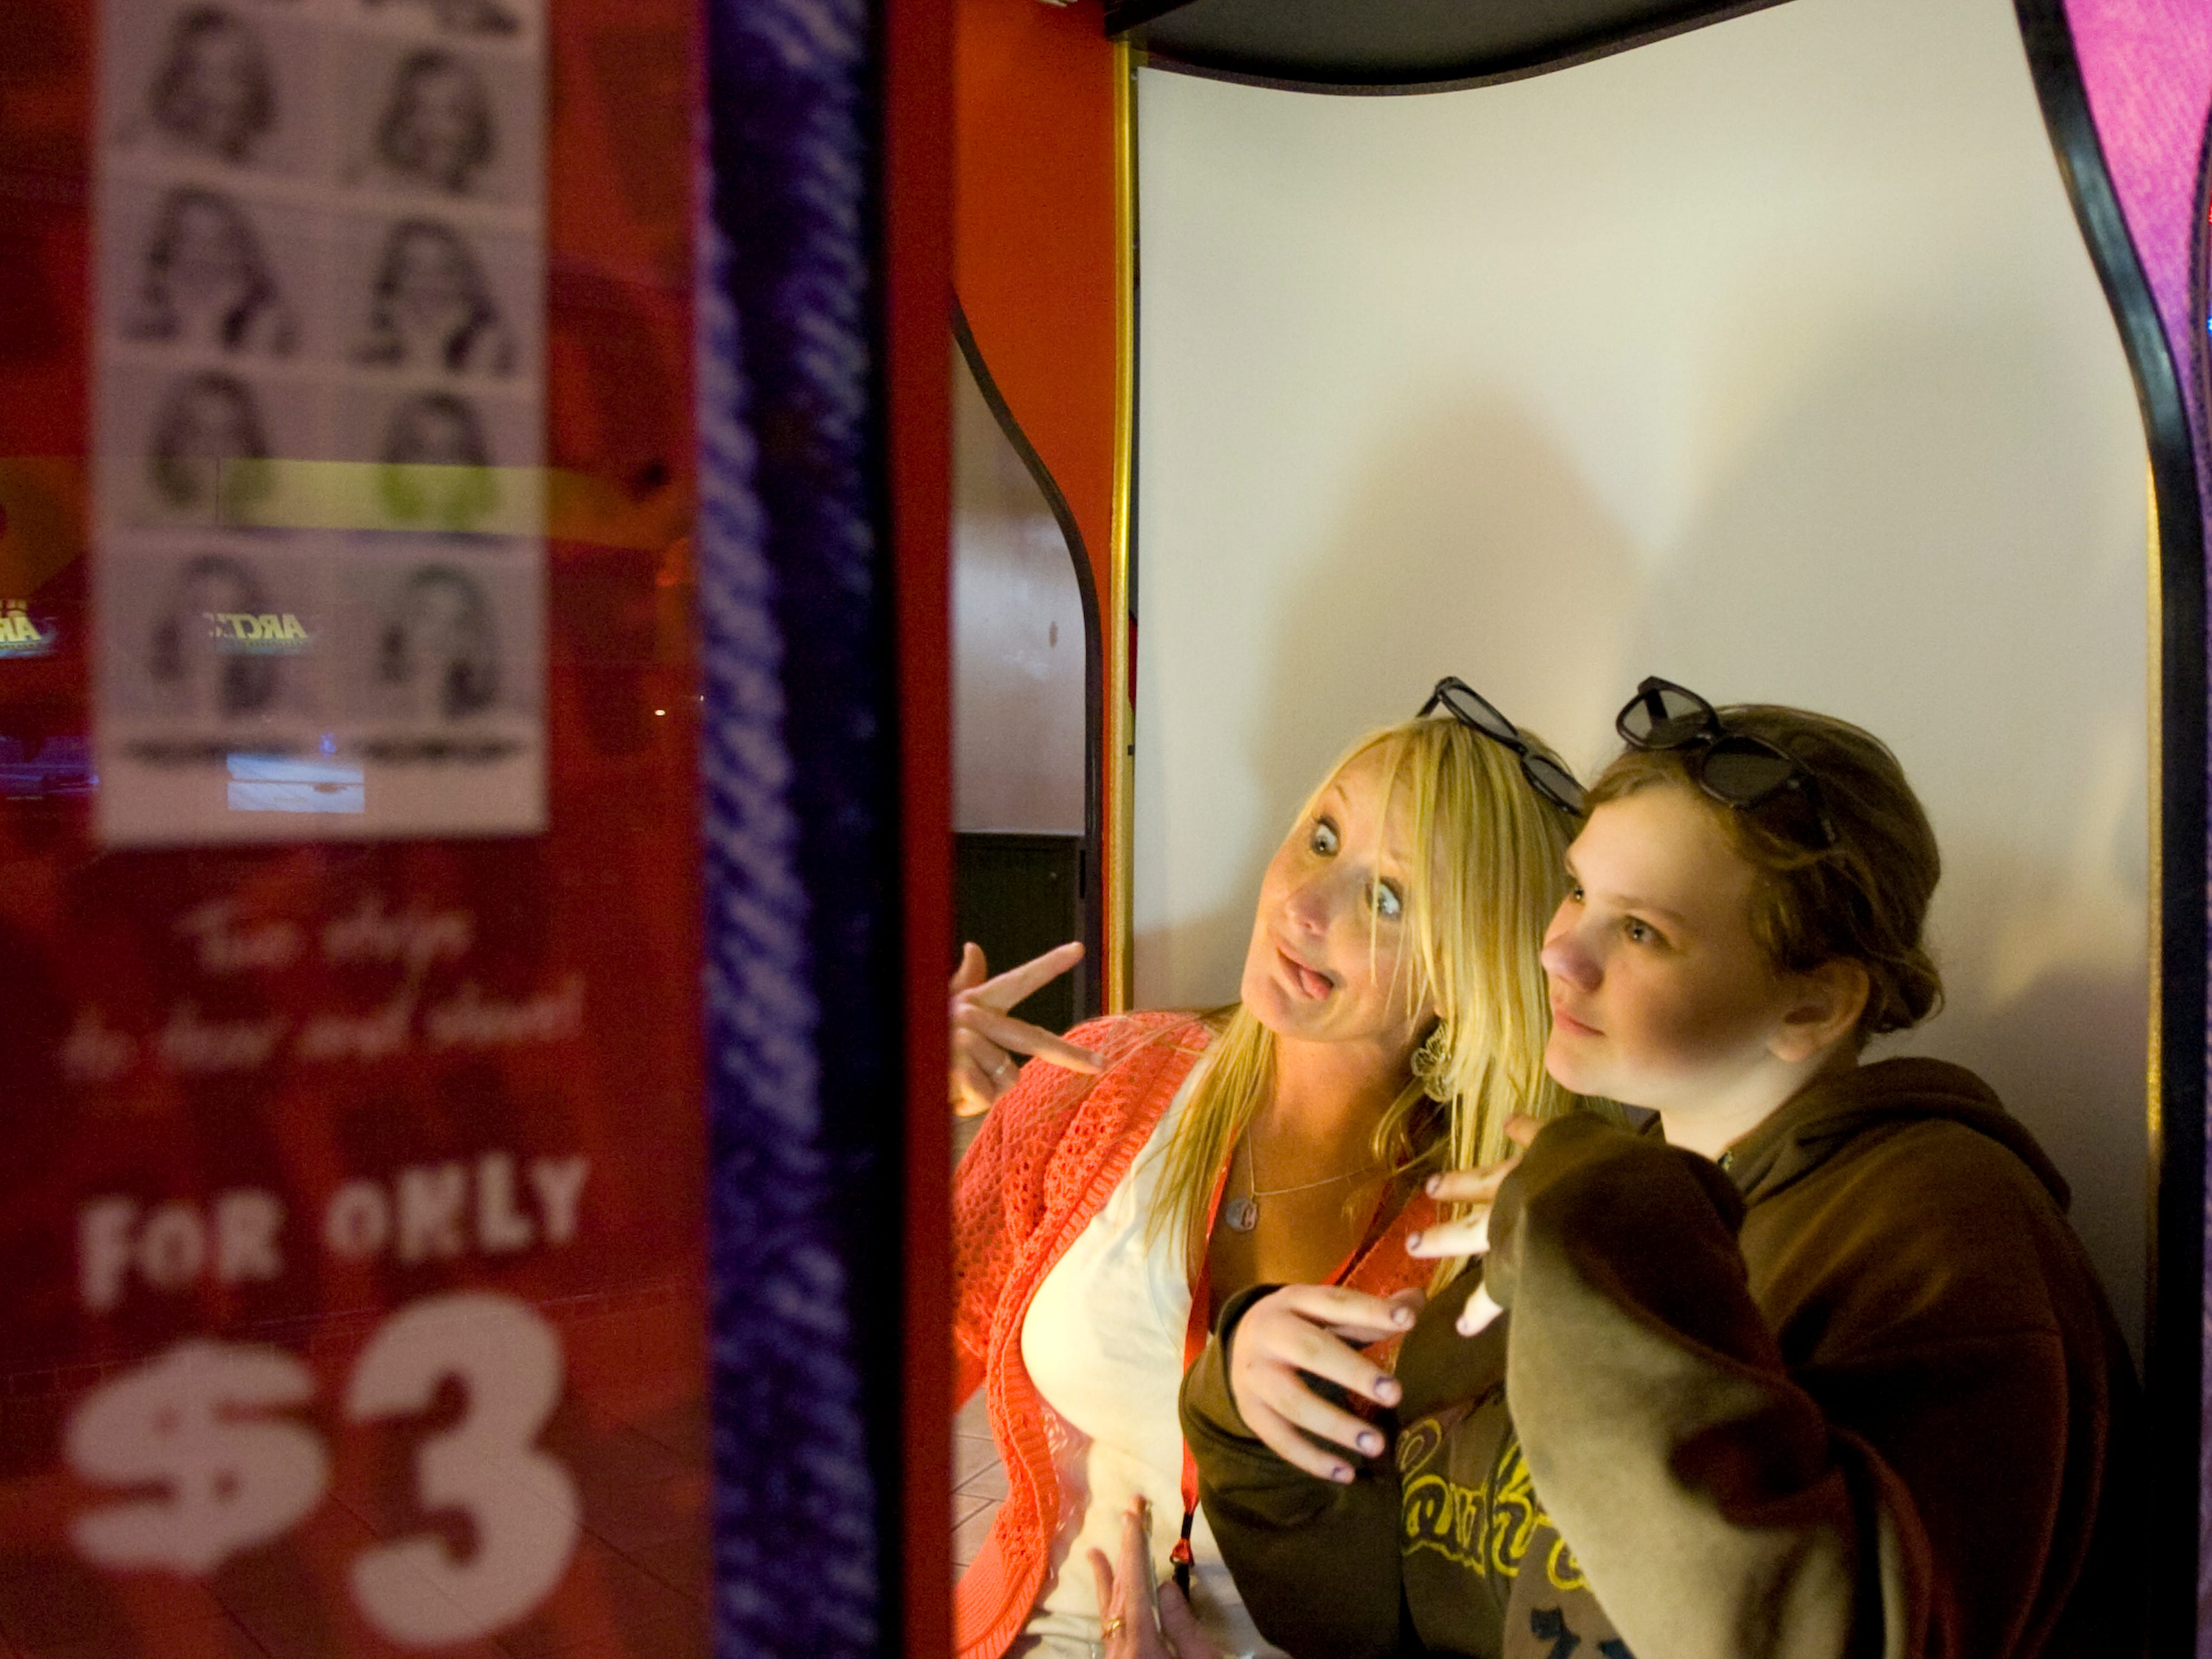 Christi Hampton, left, and Judy Ridenour, 11, pose for photographs inside a photo booth at Knoxville Center mall on Wednesday, Mar. 10, 2010.